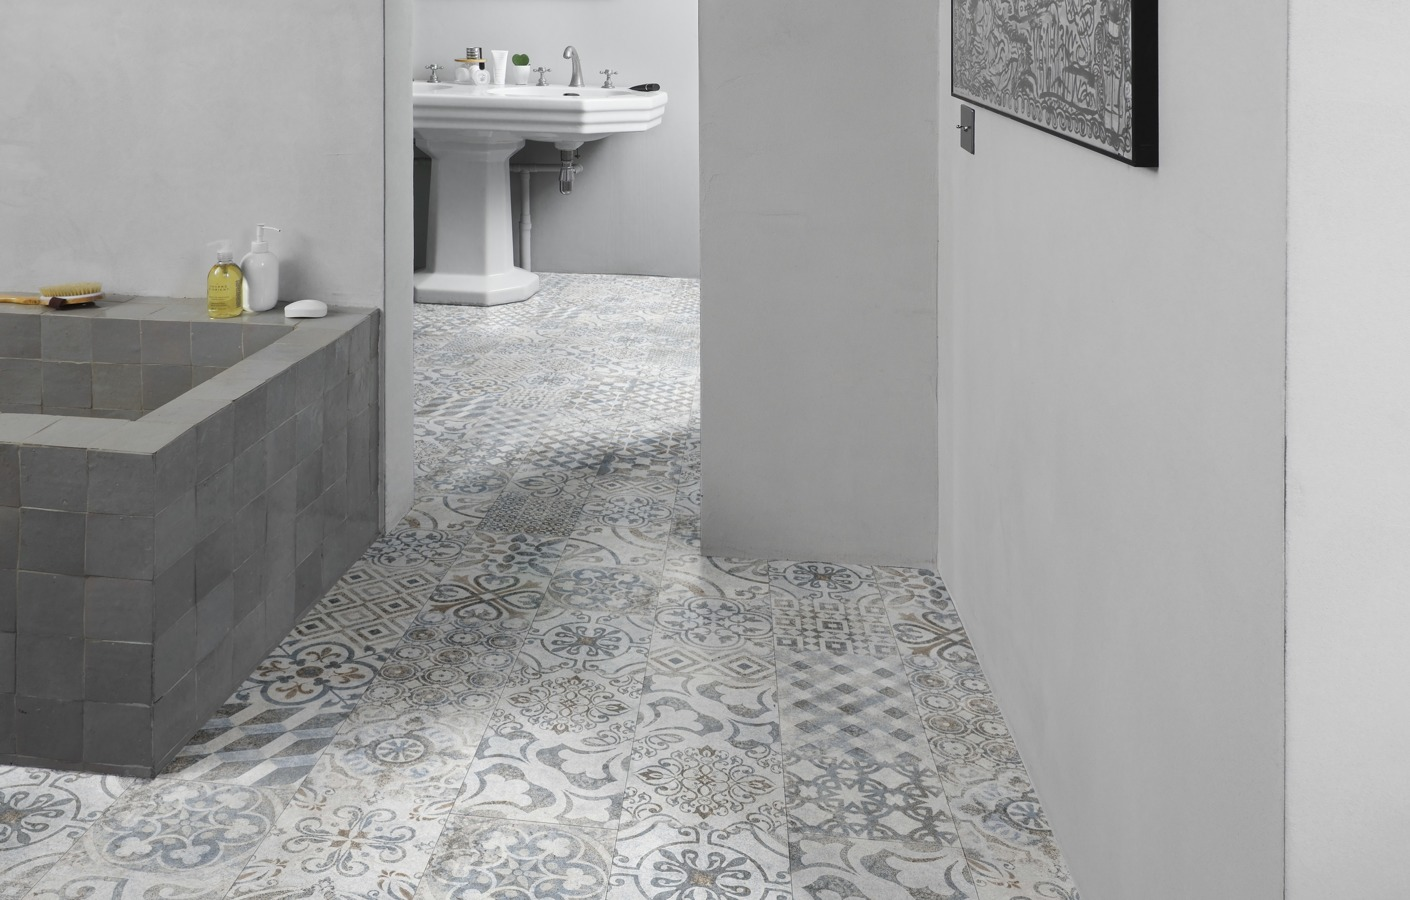 Phenomenal Laminate For A Warm Water Resistant Bathroom Floor Home Interior And Landscaping Ologienasavecom